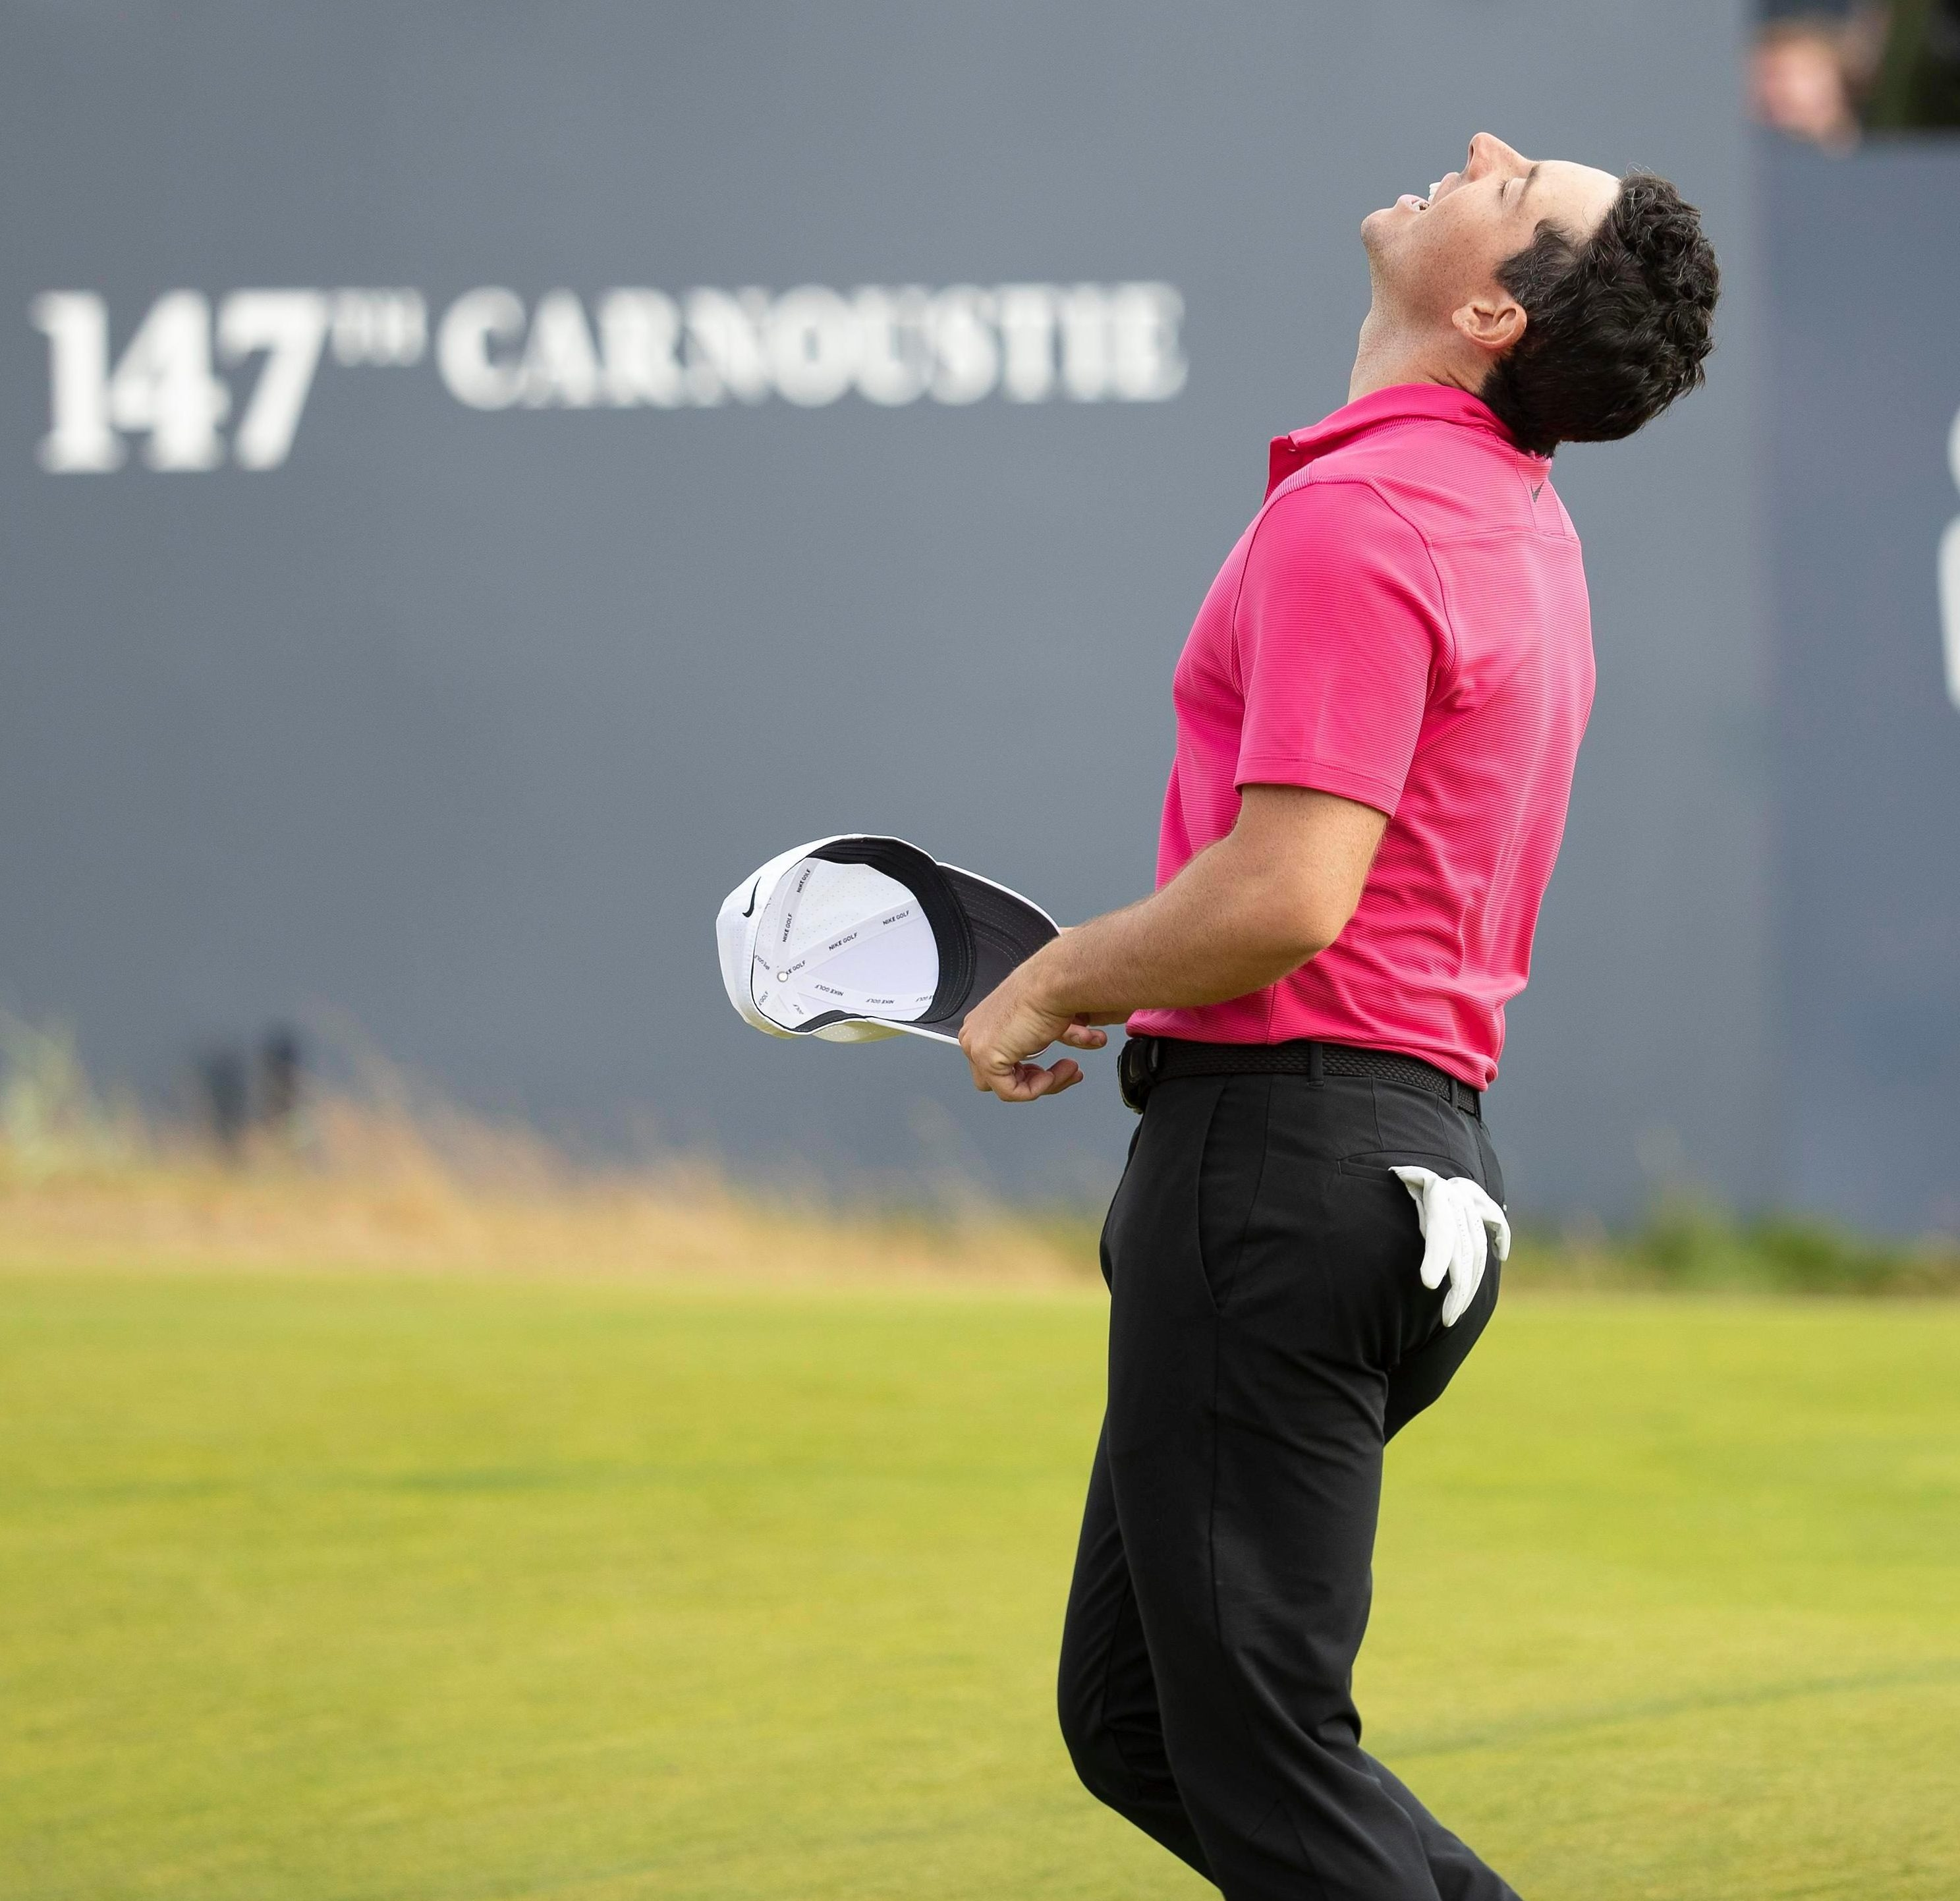 McIlroy endured a frustrating final round, bogeying three holes but recording two birdies and an eagle